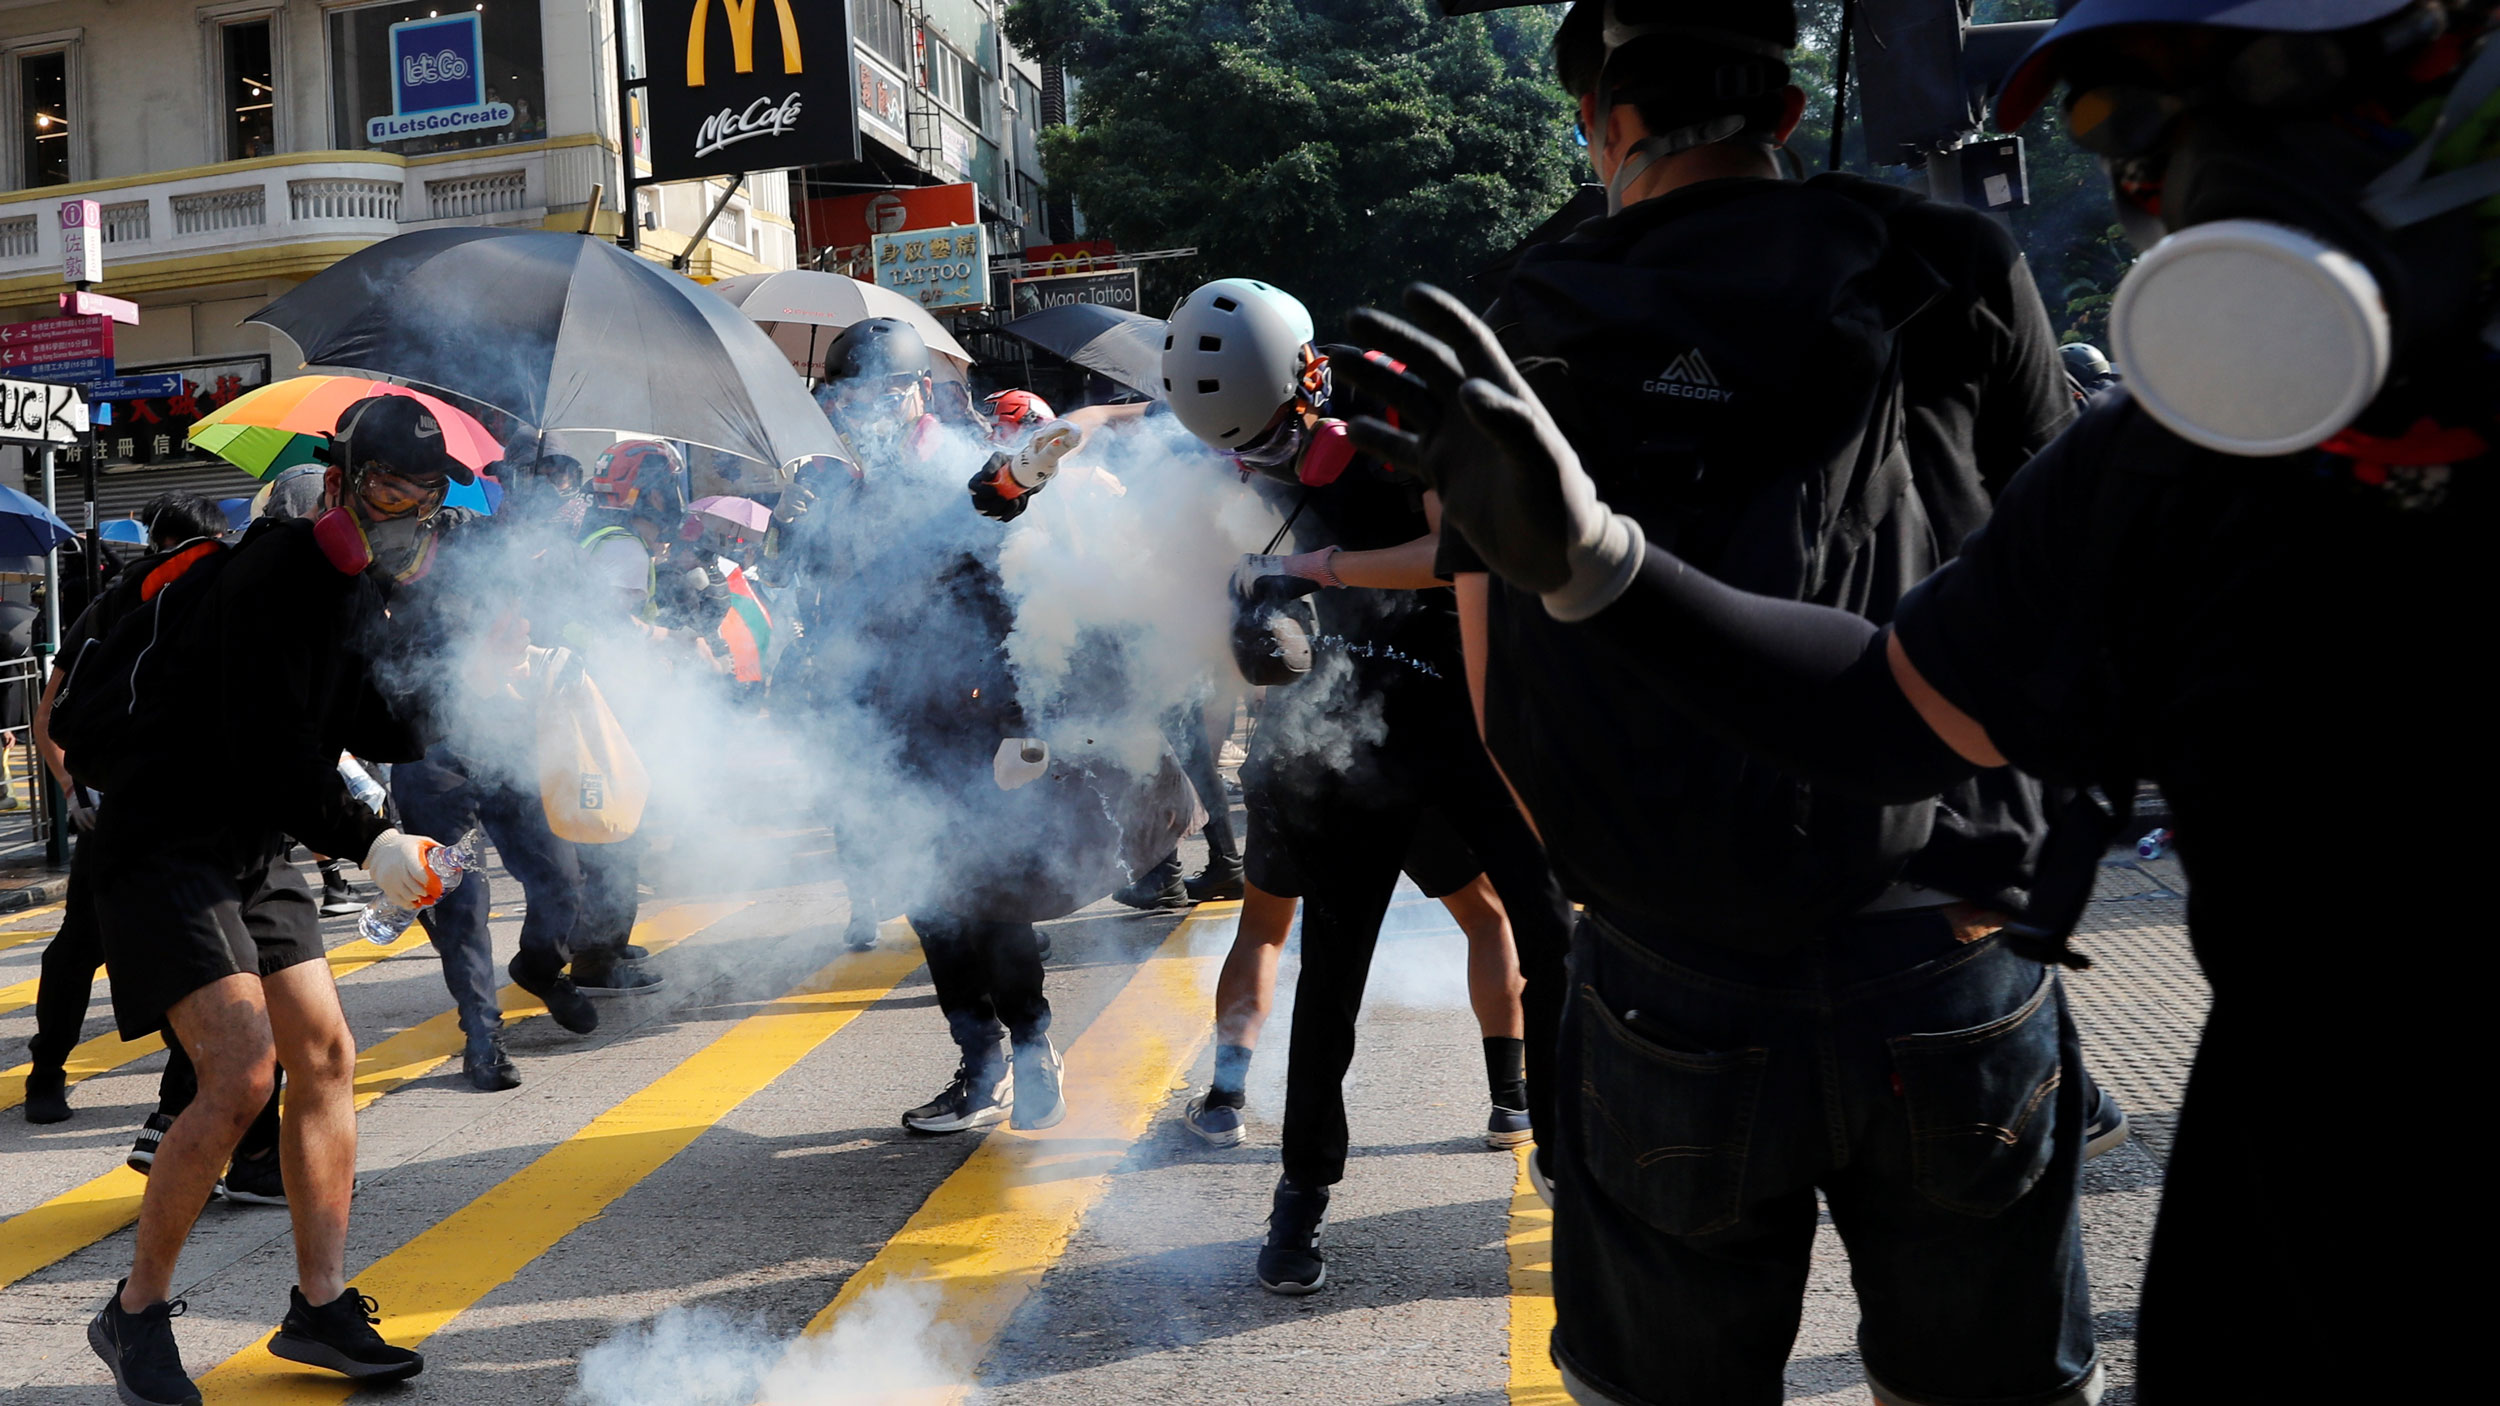 An anti-government protester hits by a tear gas canister during a protest march in Hong Kong, China, on Oct. 20, 2019.